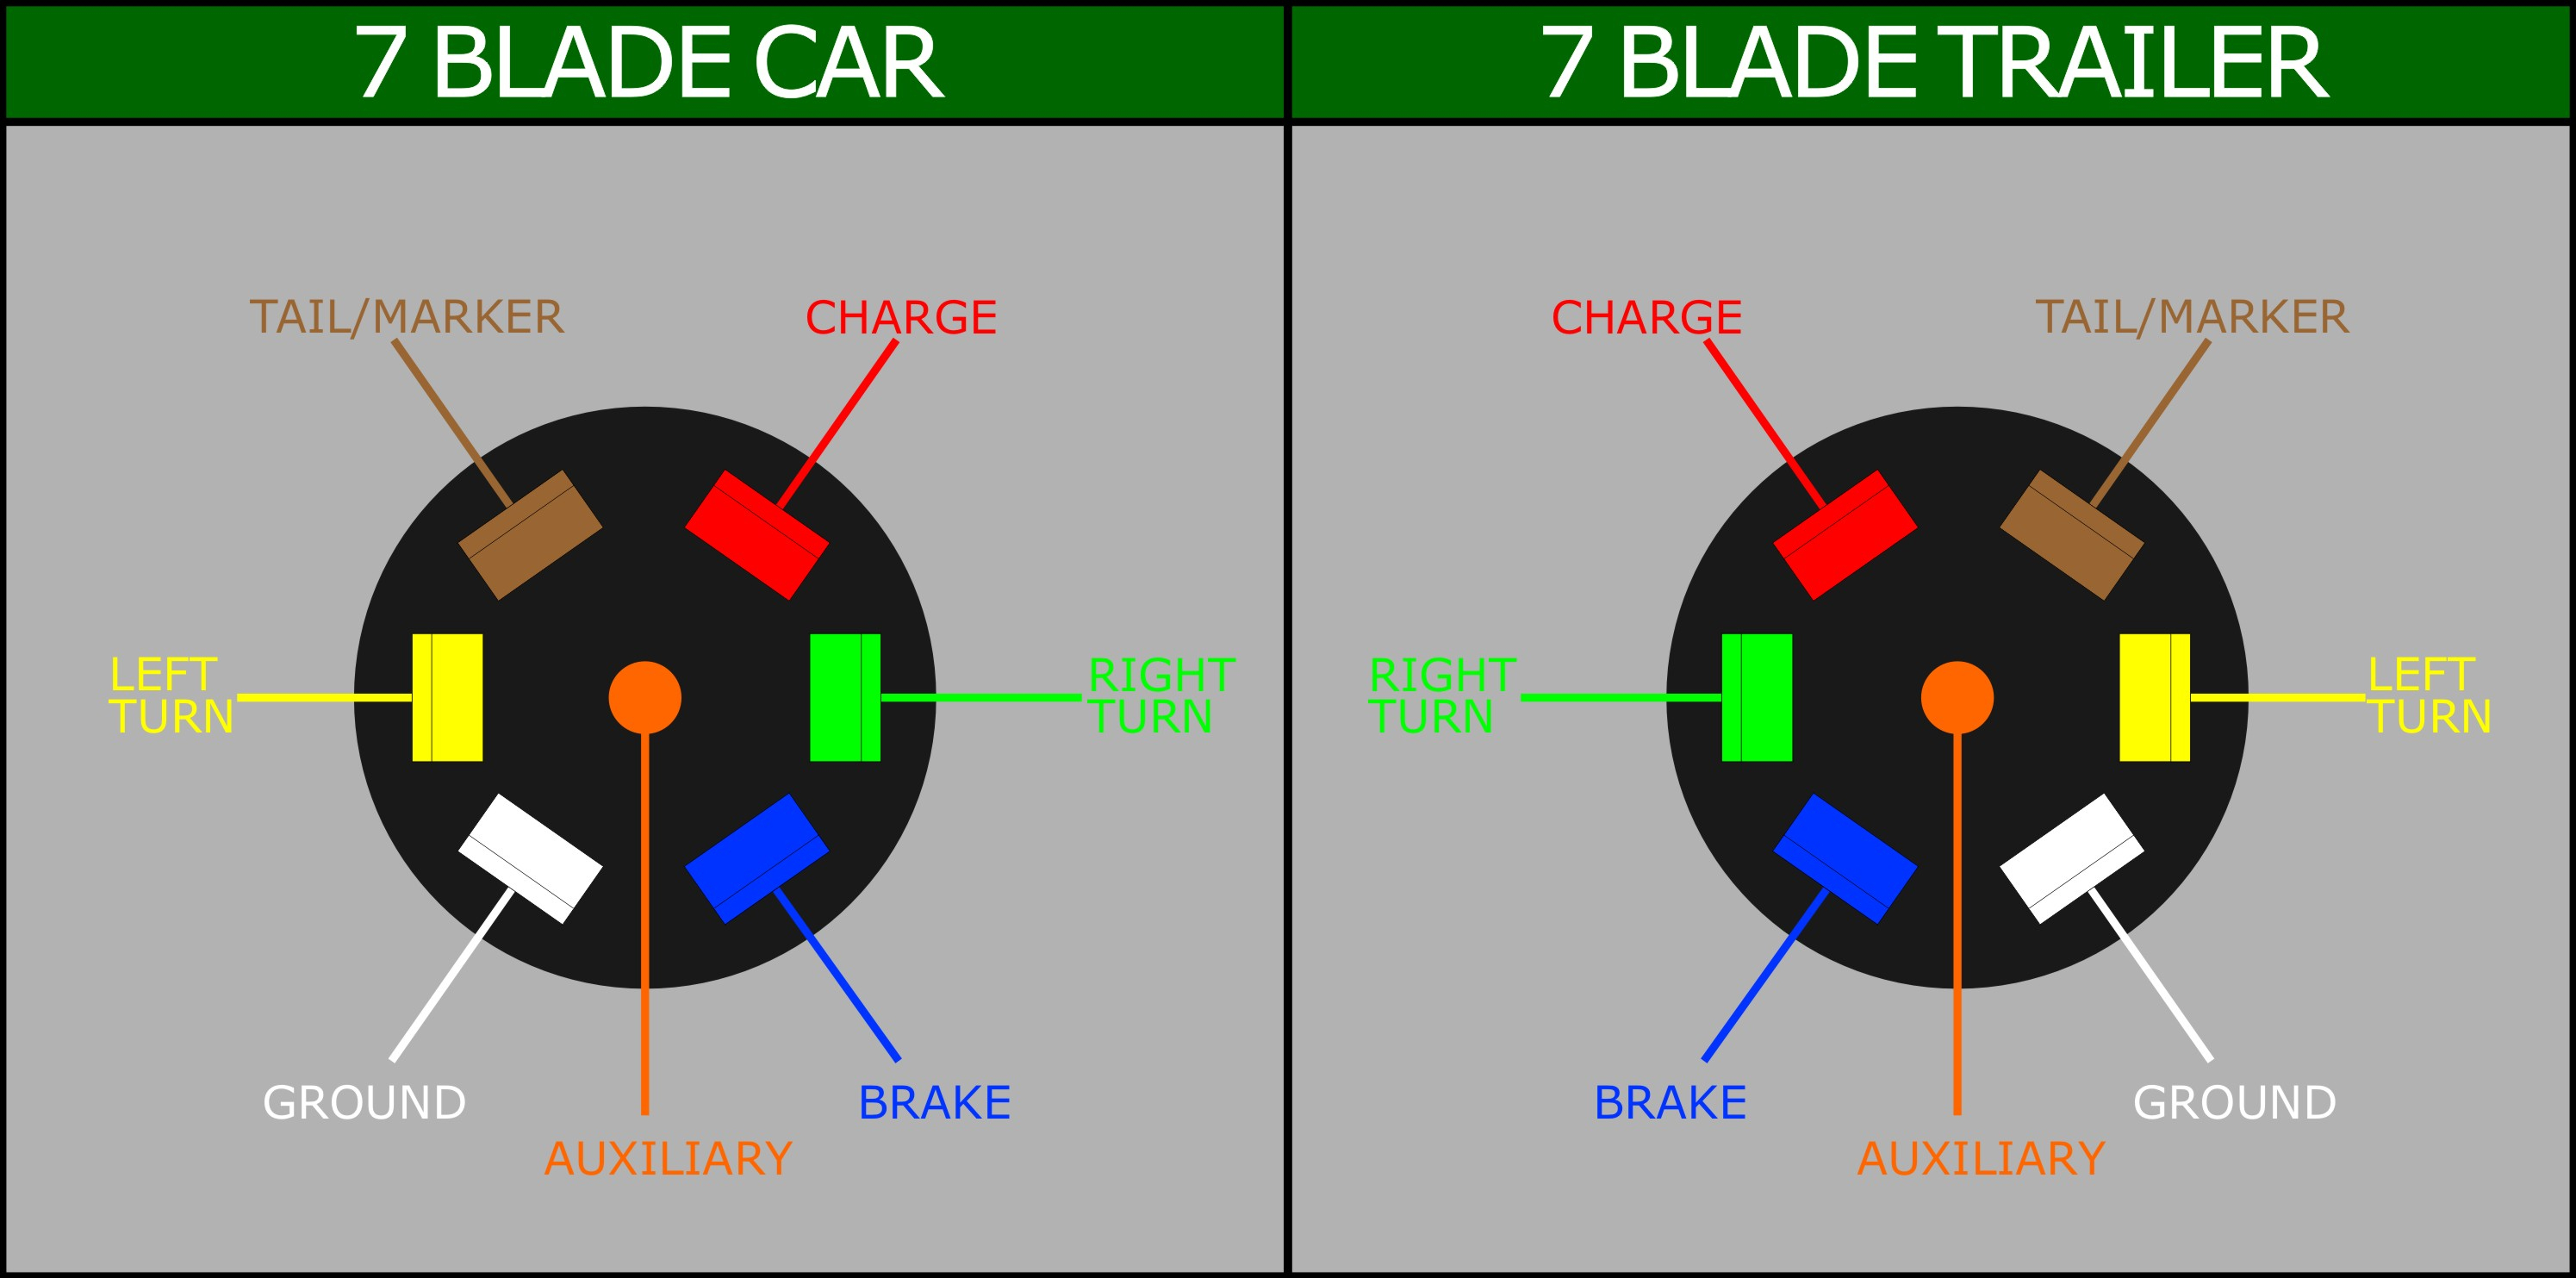 7 Pin Connector Wiring Diagram For Dodge | Manual E-Books - 7 Pin Connector Wiring Diagram